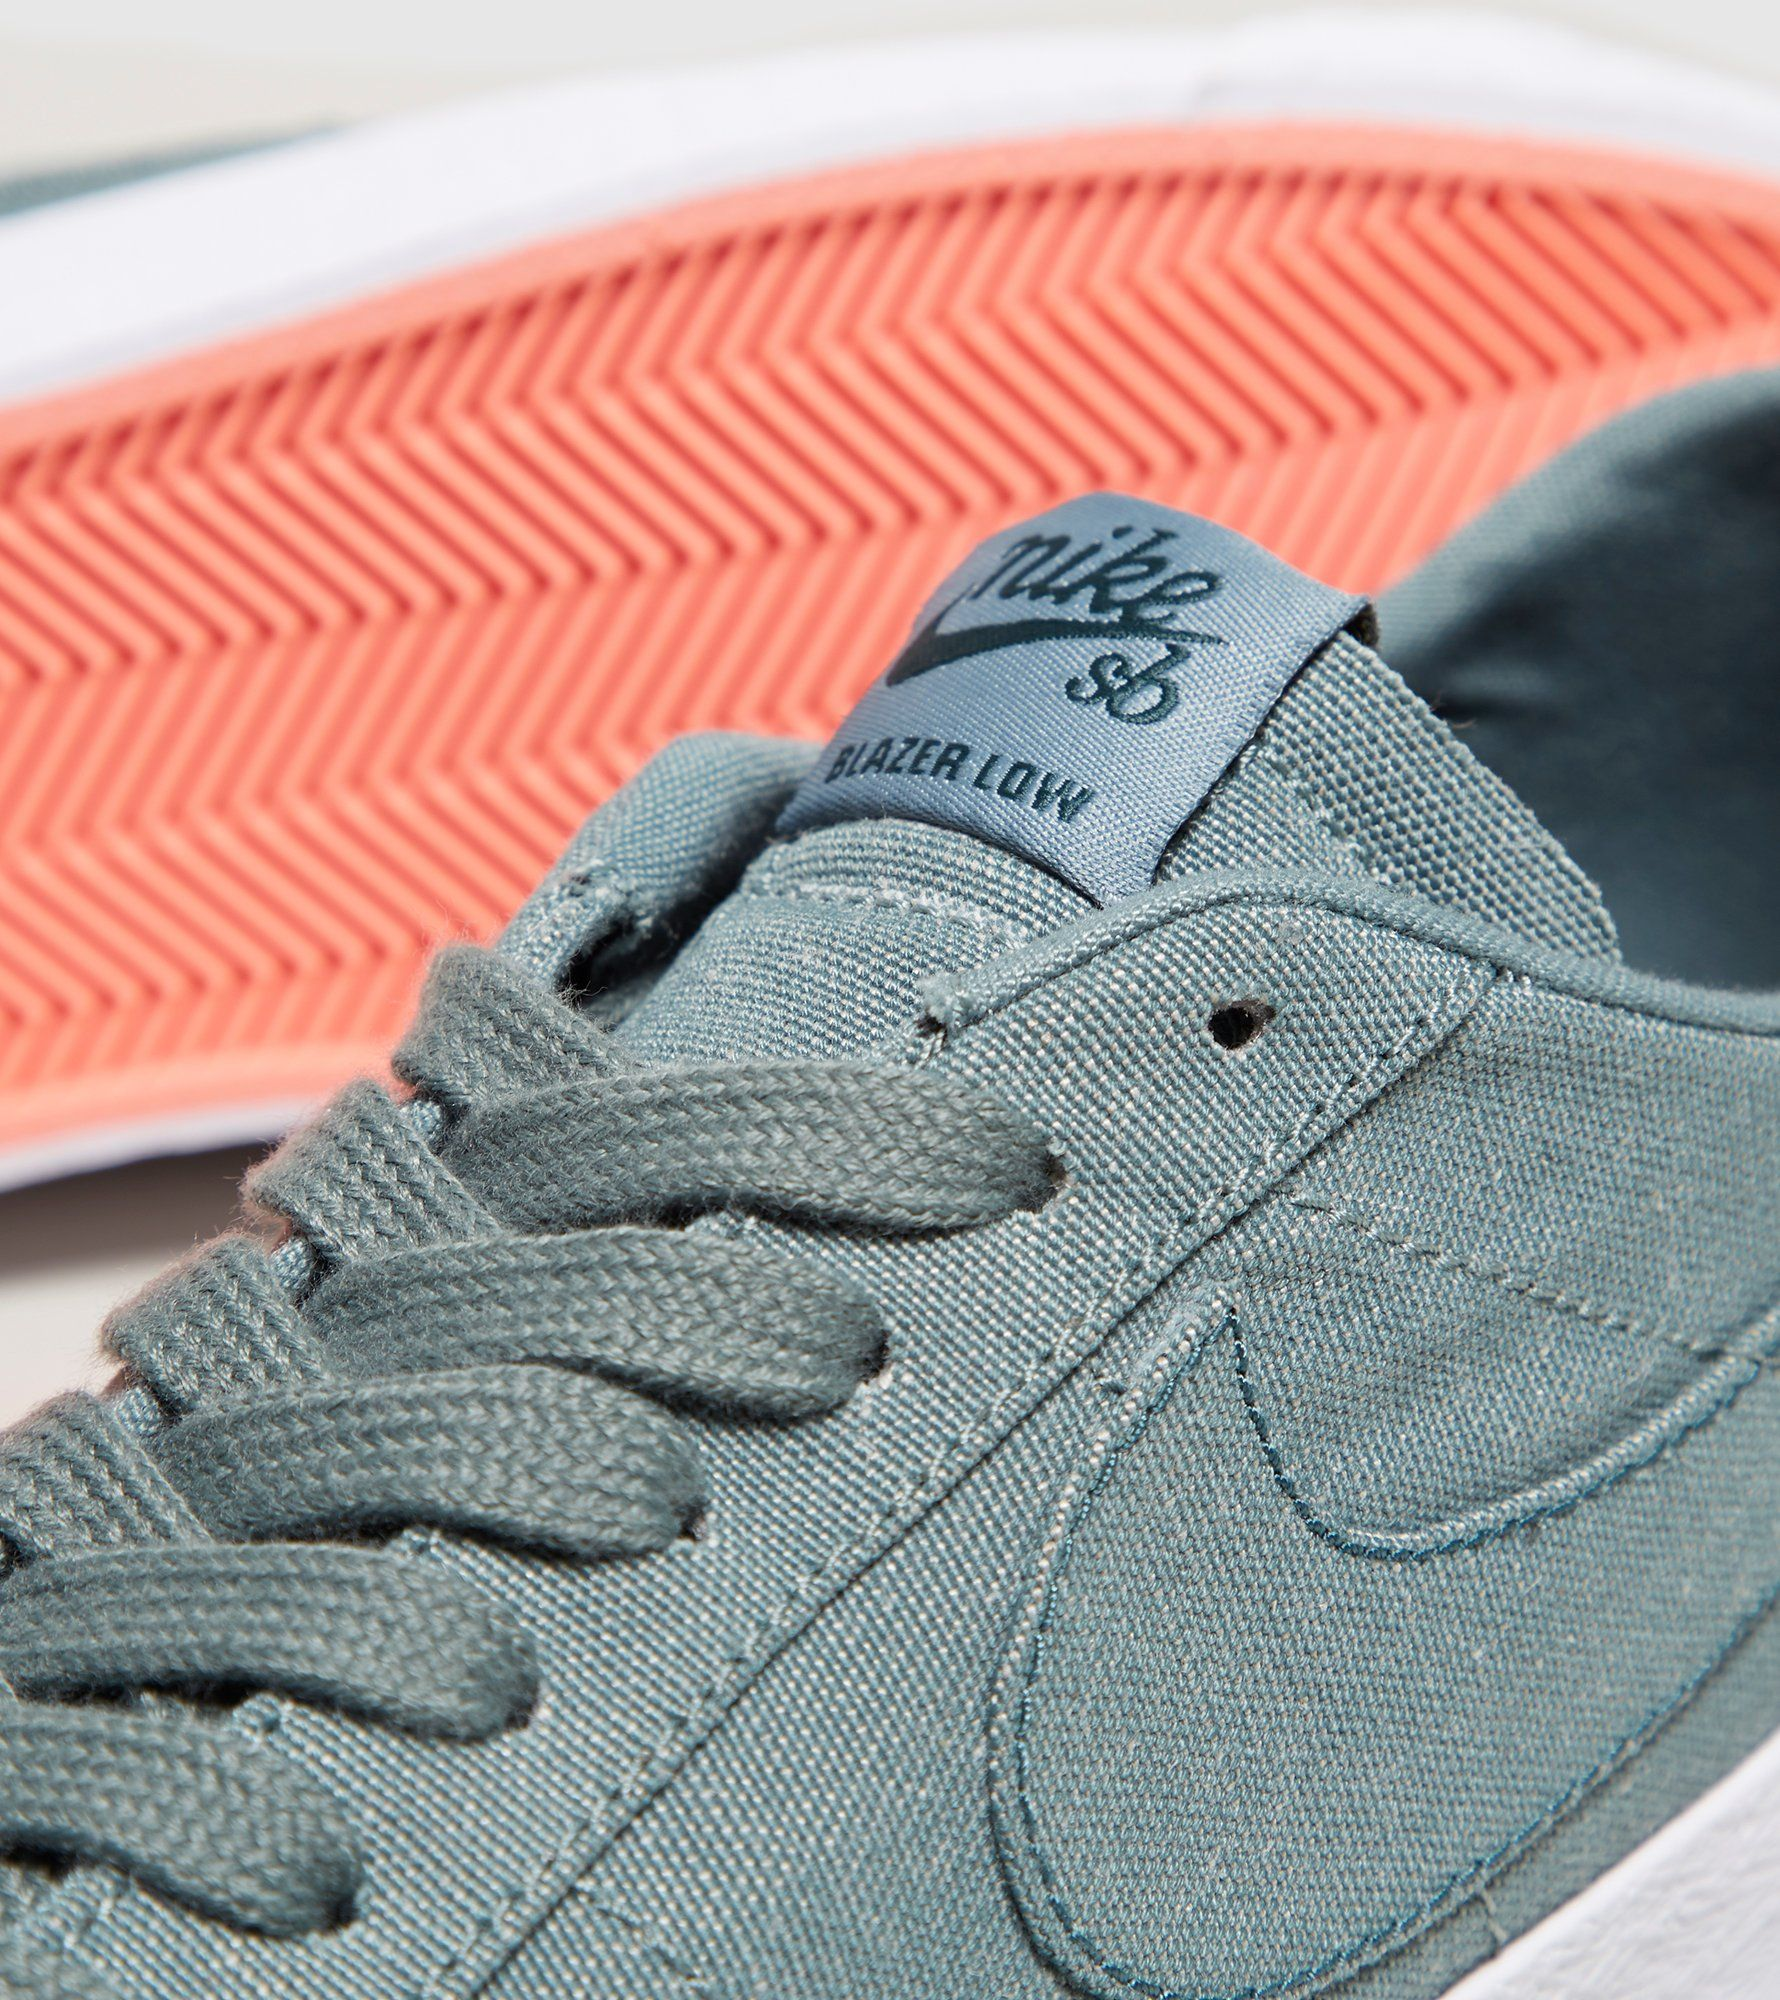 Nike SB Blazer Low Canvas Deconstructed